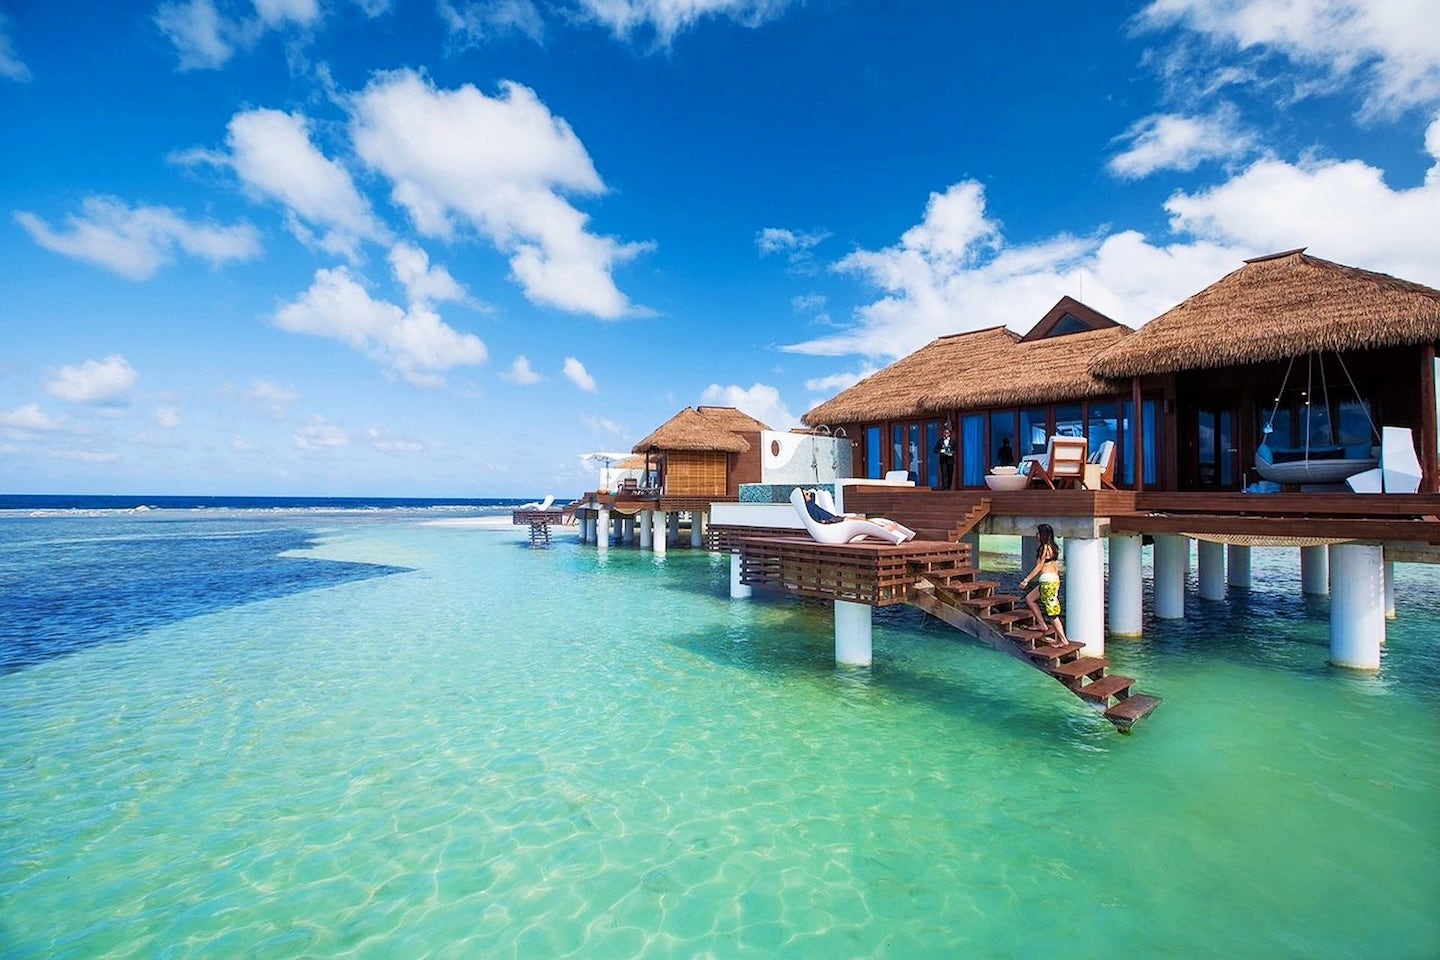 8 Bucket List Overwater Bungalows in the Caribbean